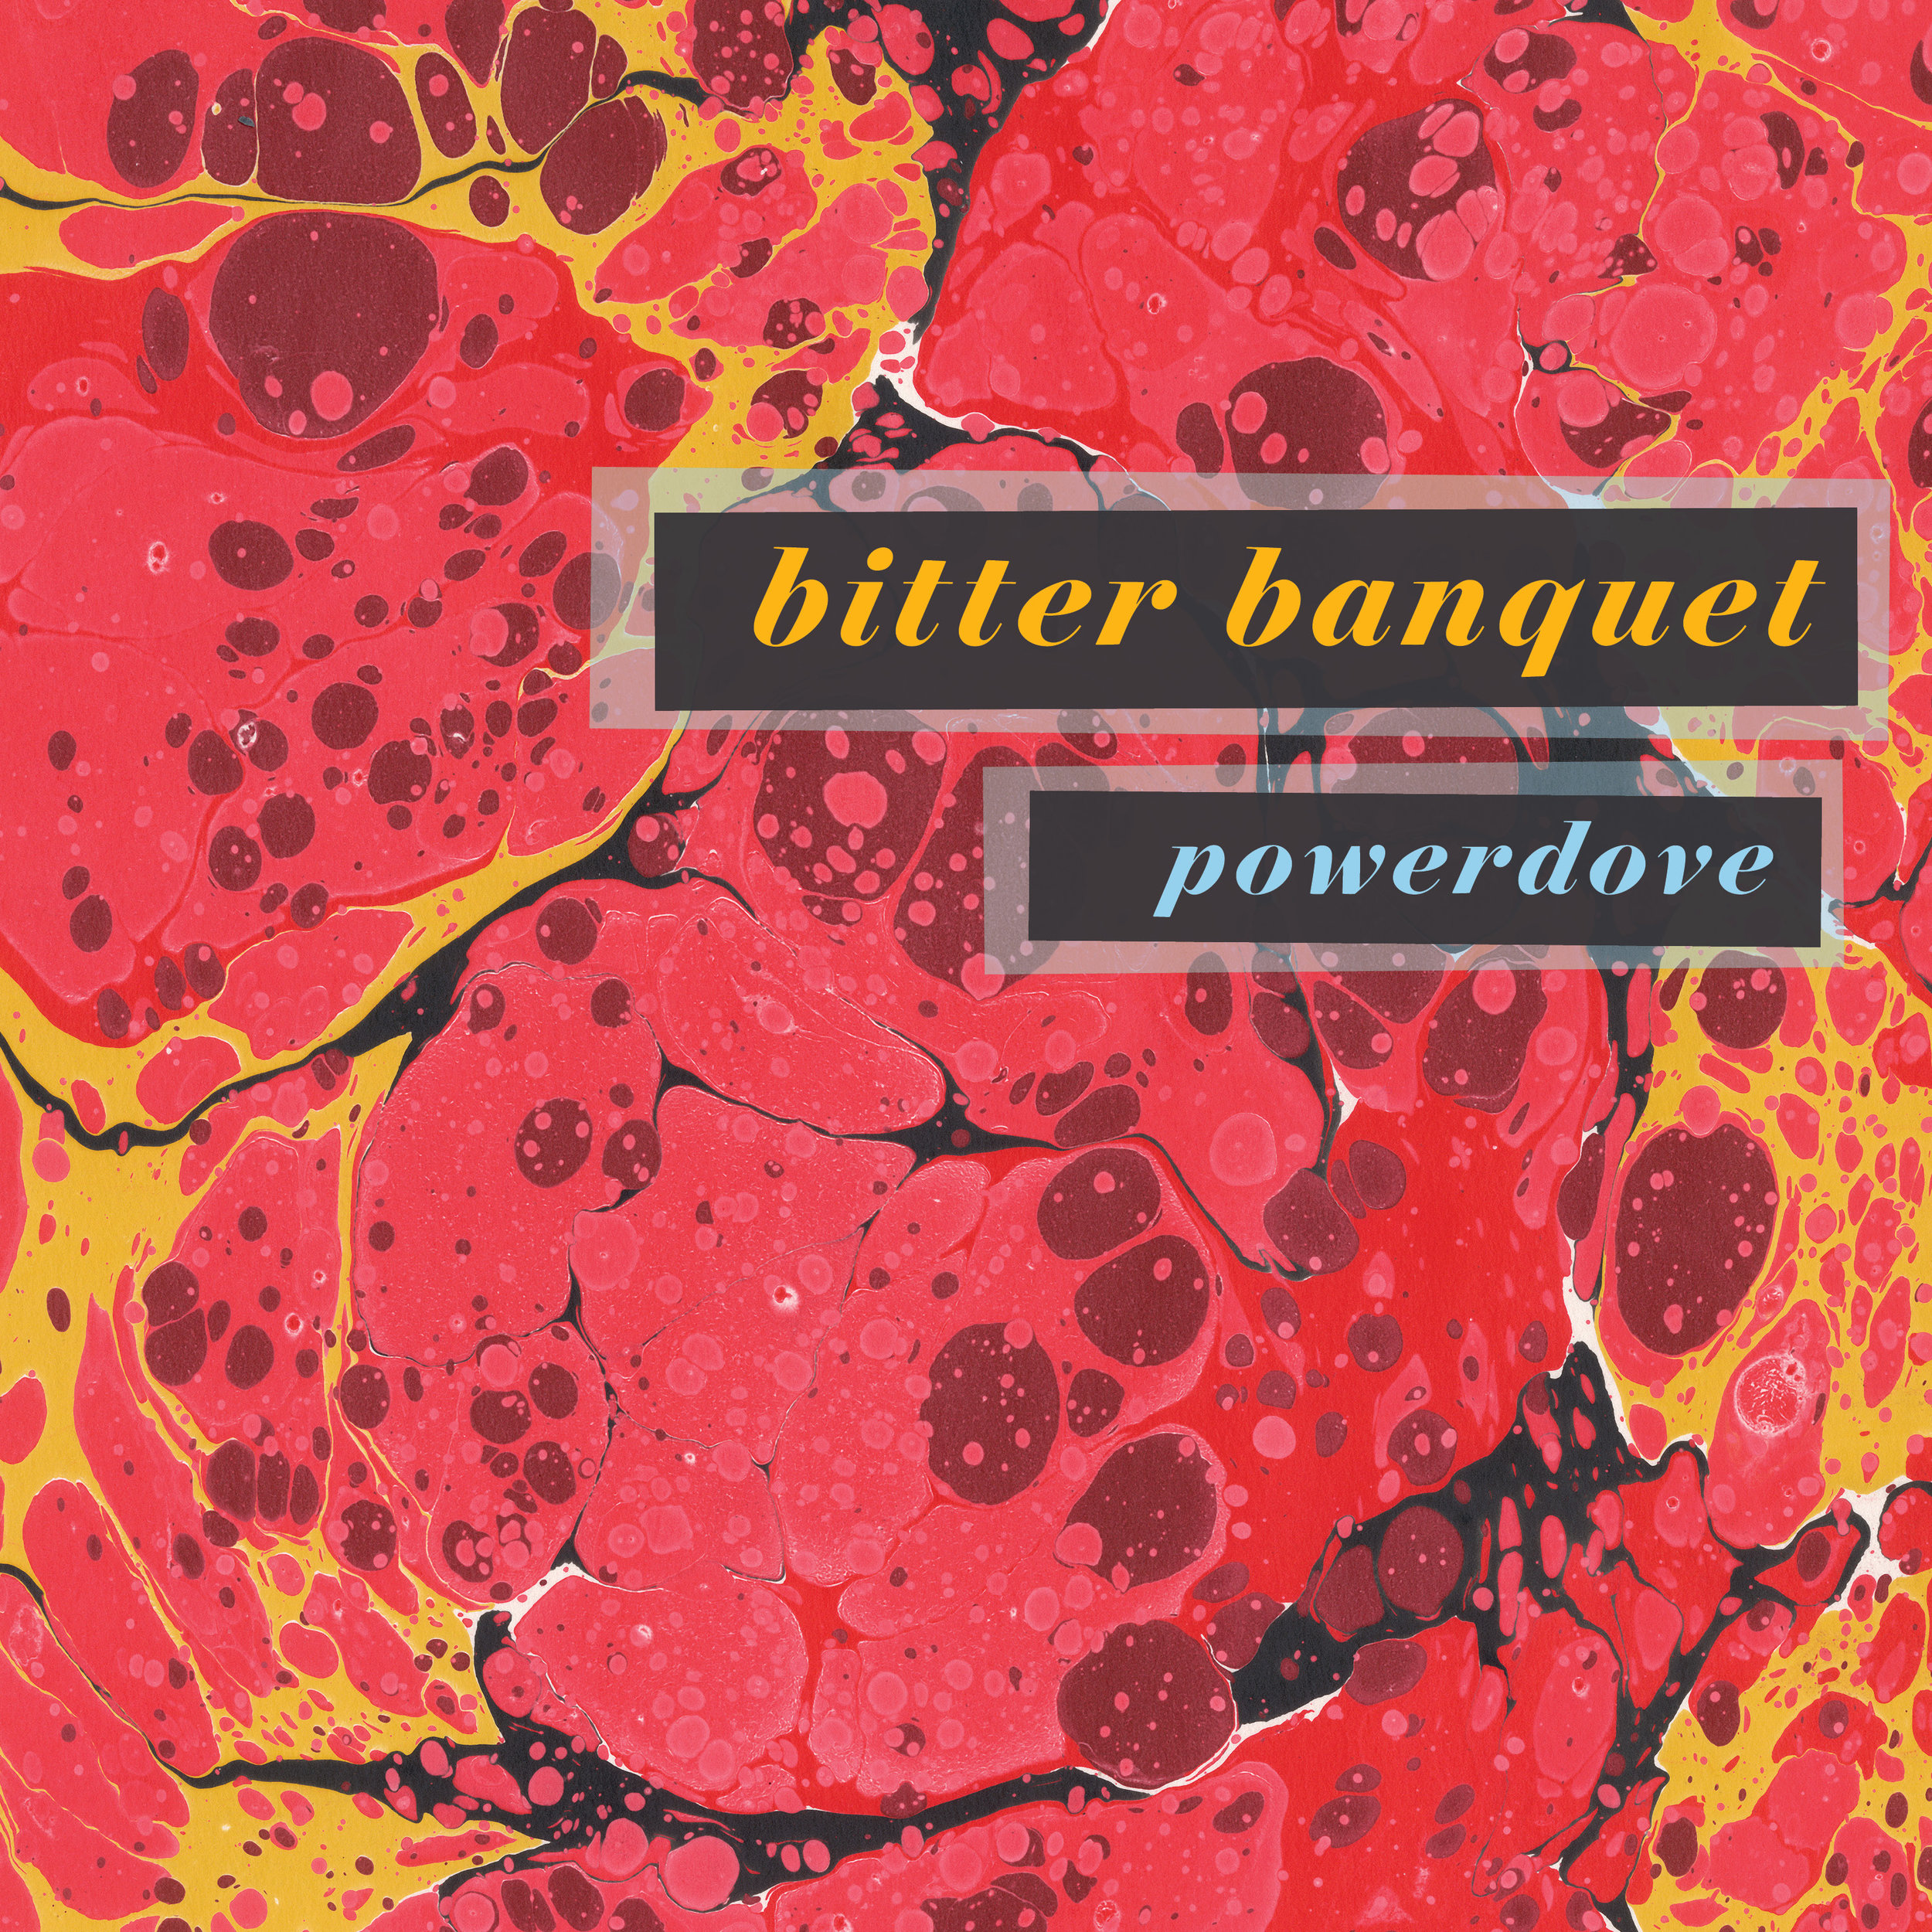 Copy of powerdove - bitter banquet